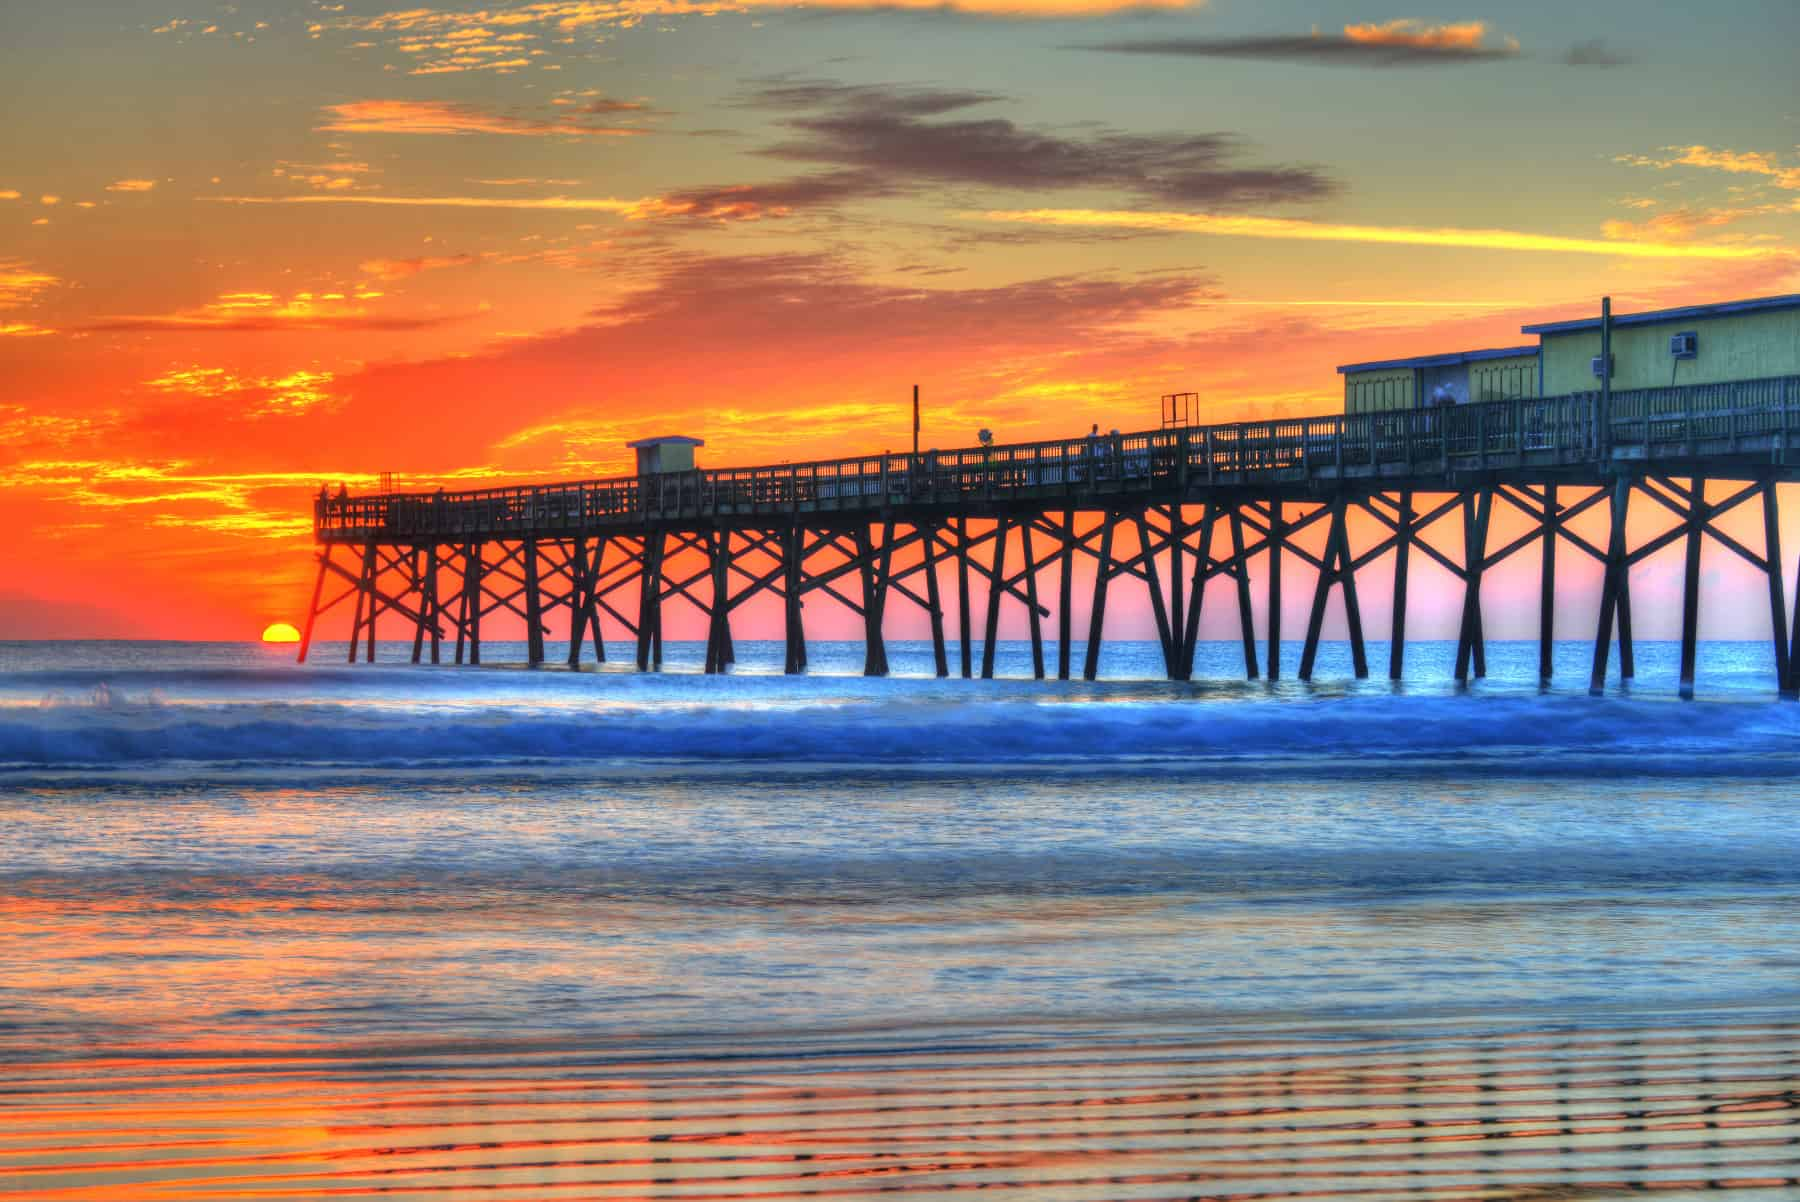 Daytona Beach - Sunglow Pier